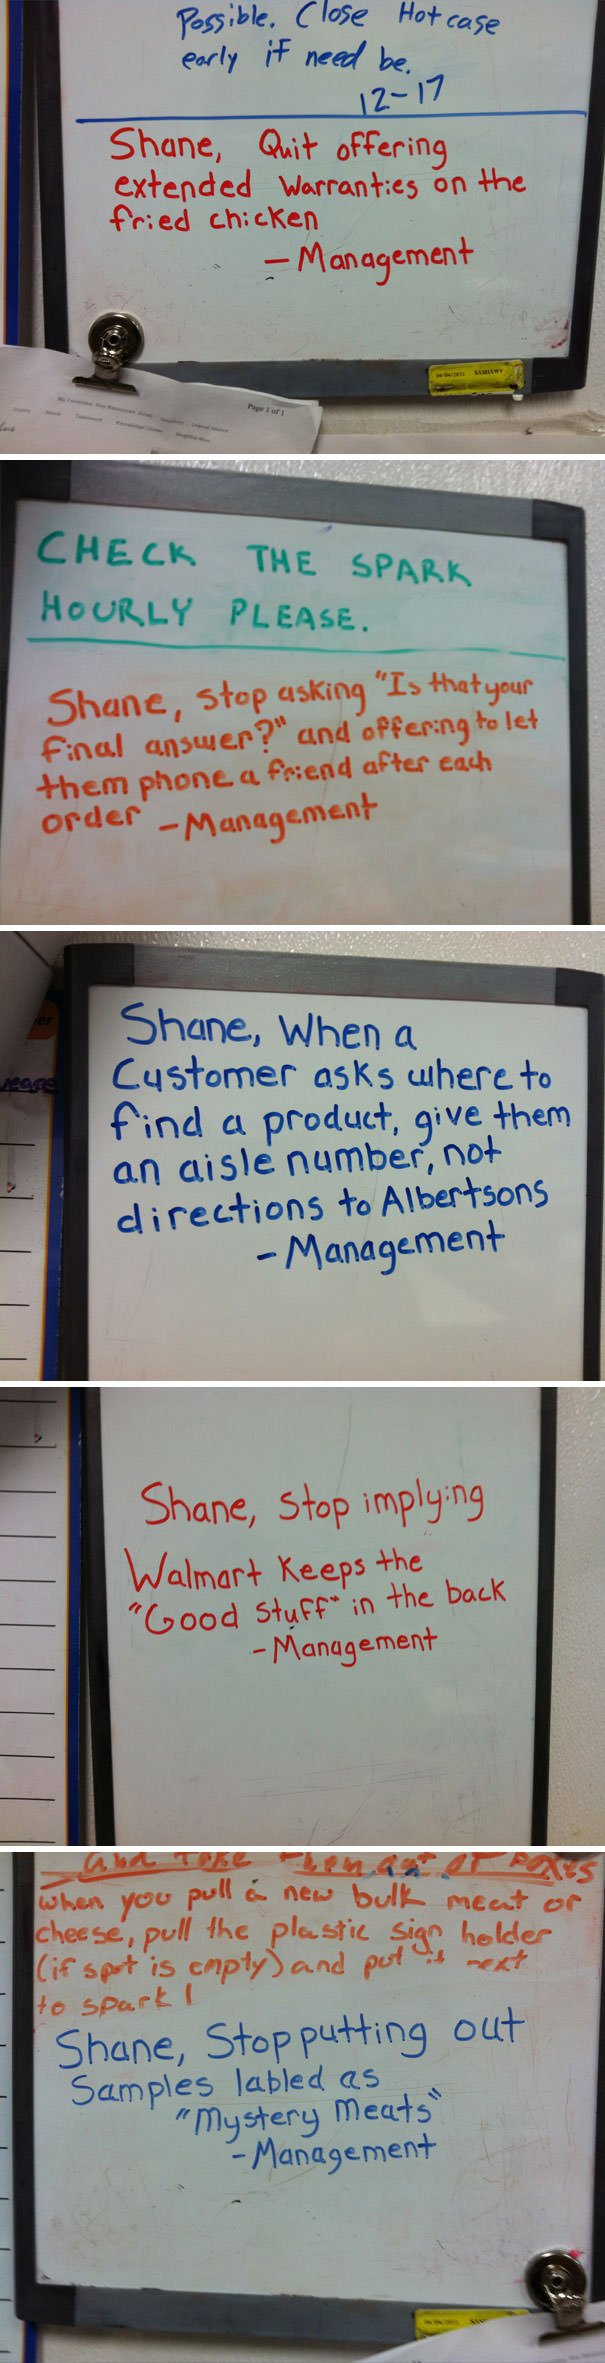 My Coworker At The Walmart Deli Causes A Lot Of Trouble For Management